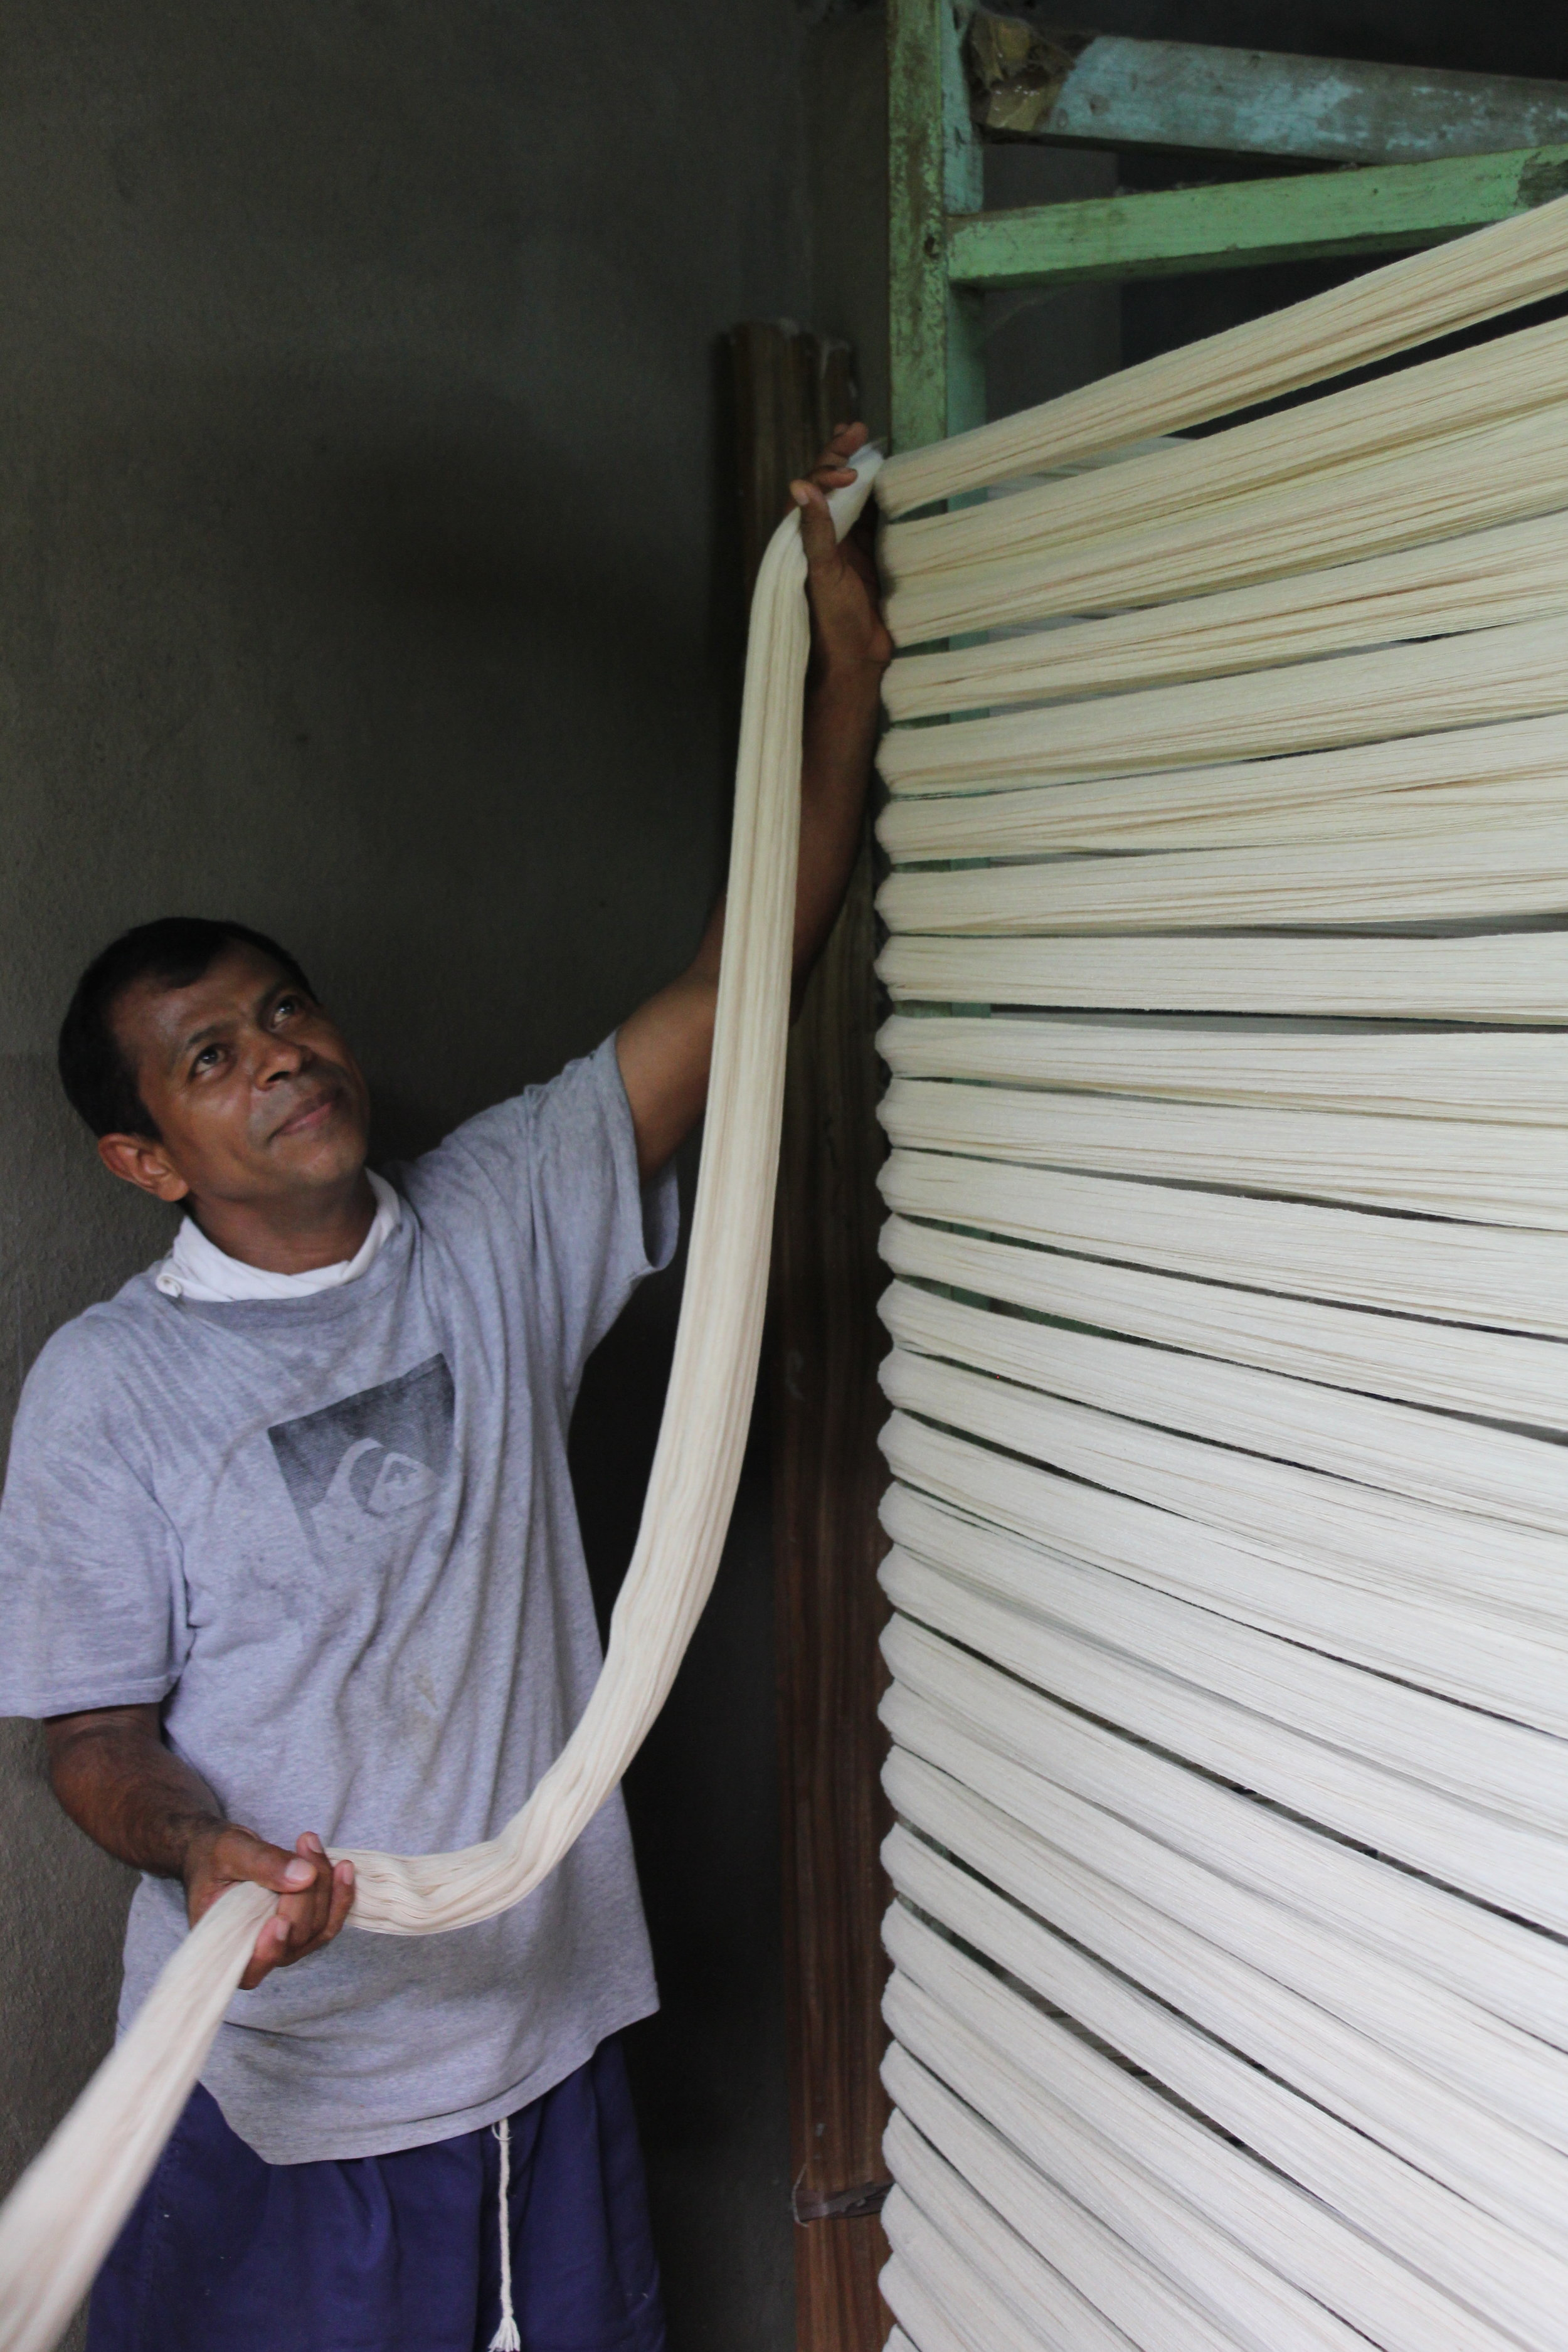 The natural fiber cotton is being prepared to set up on the loom by our artisan partner Huber in Nicaragua